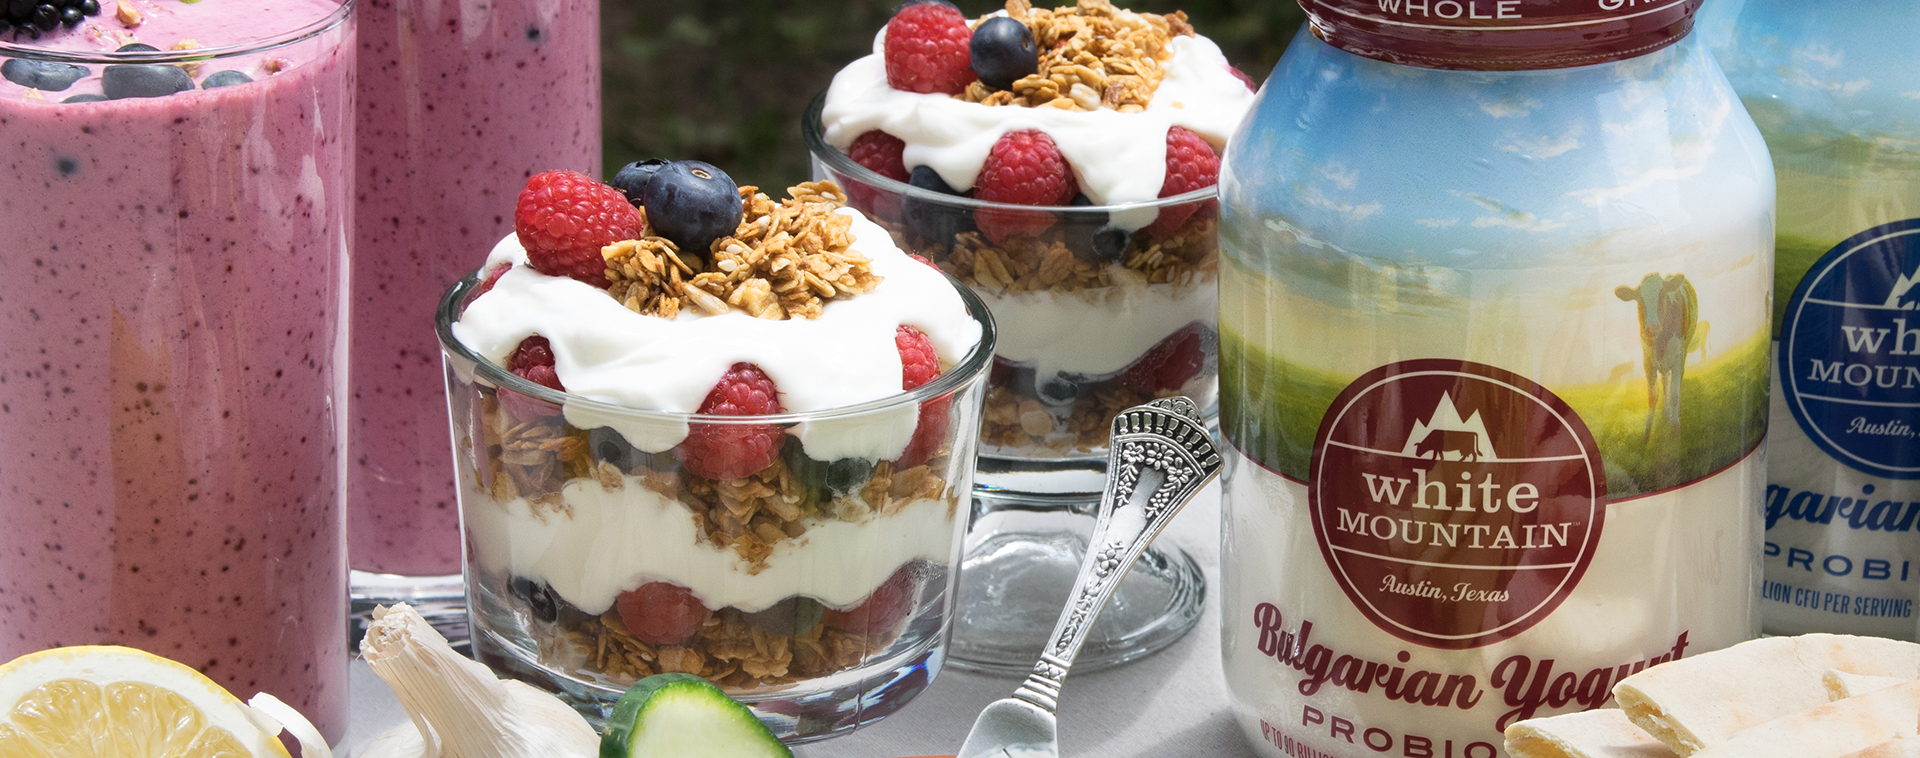 Creamy Bulgarian Yogurt Parfaits